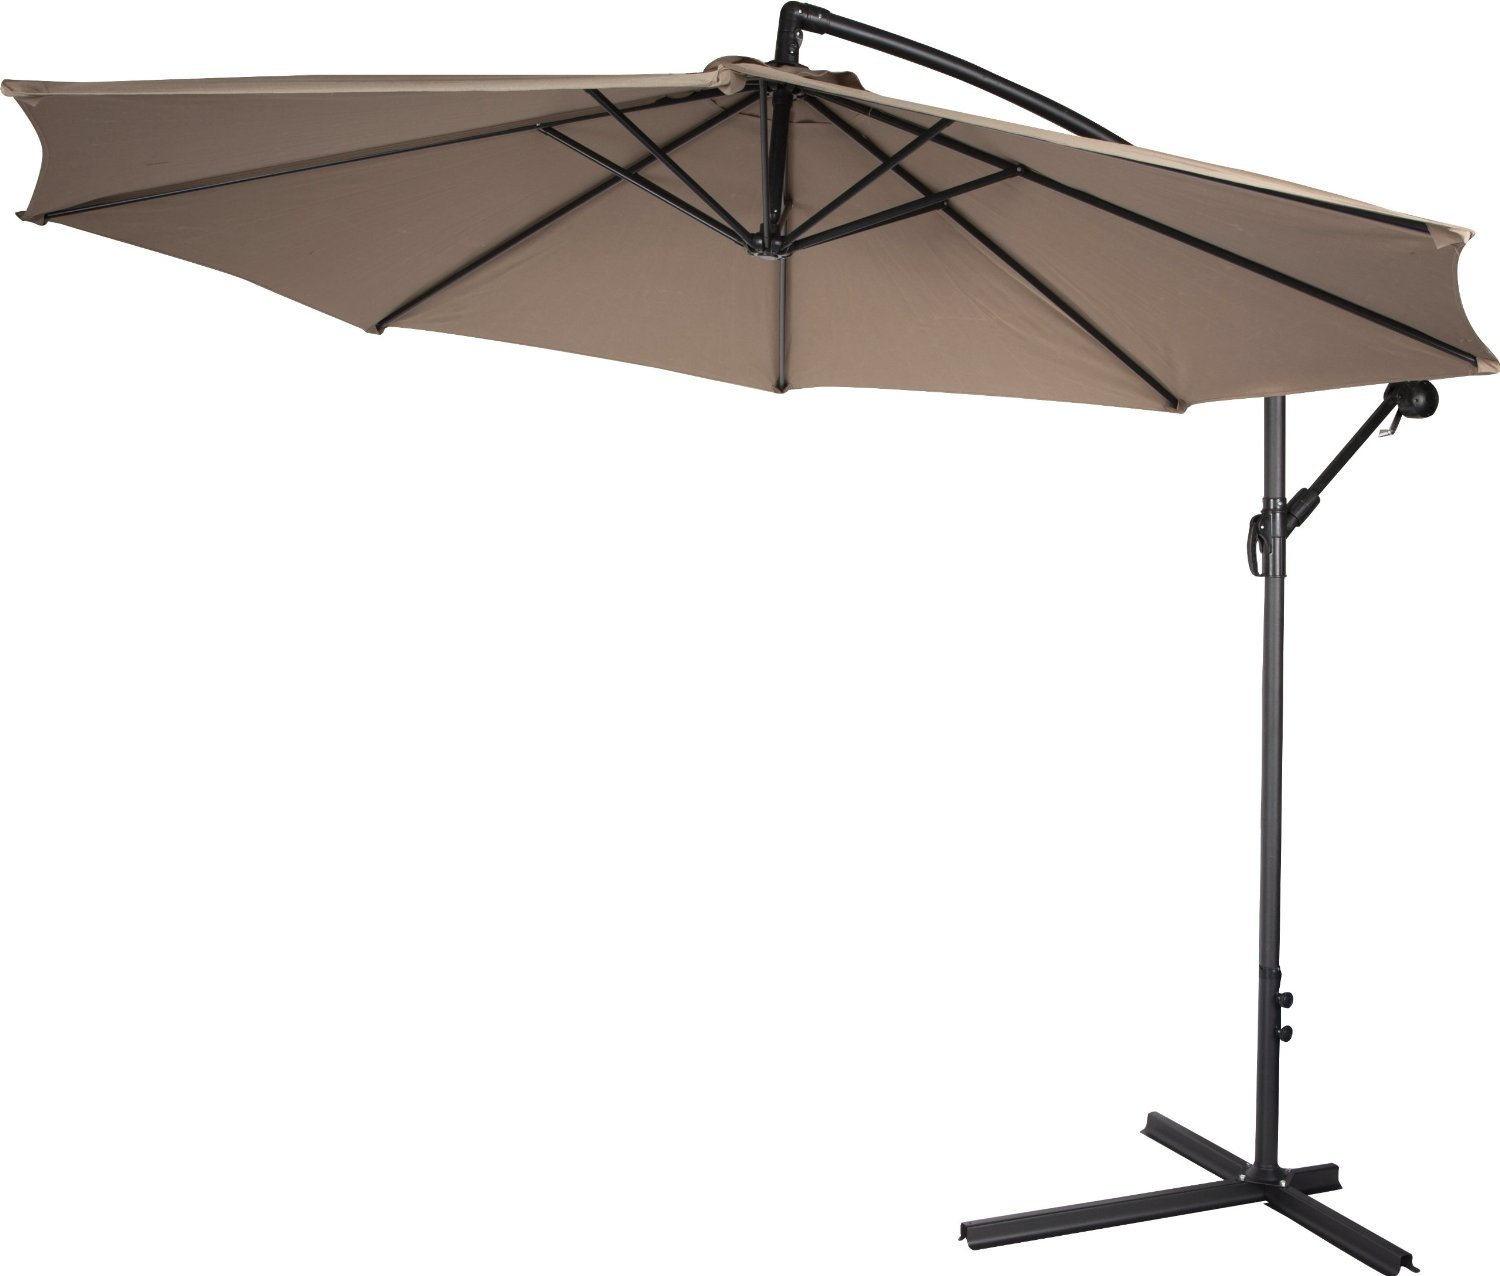 hanging ft blue patio offset umbrella aluminum umbrellas p market in garden pure